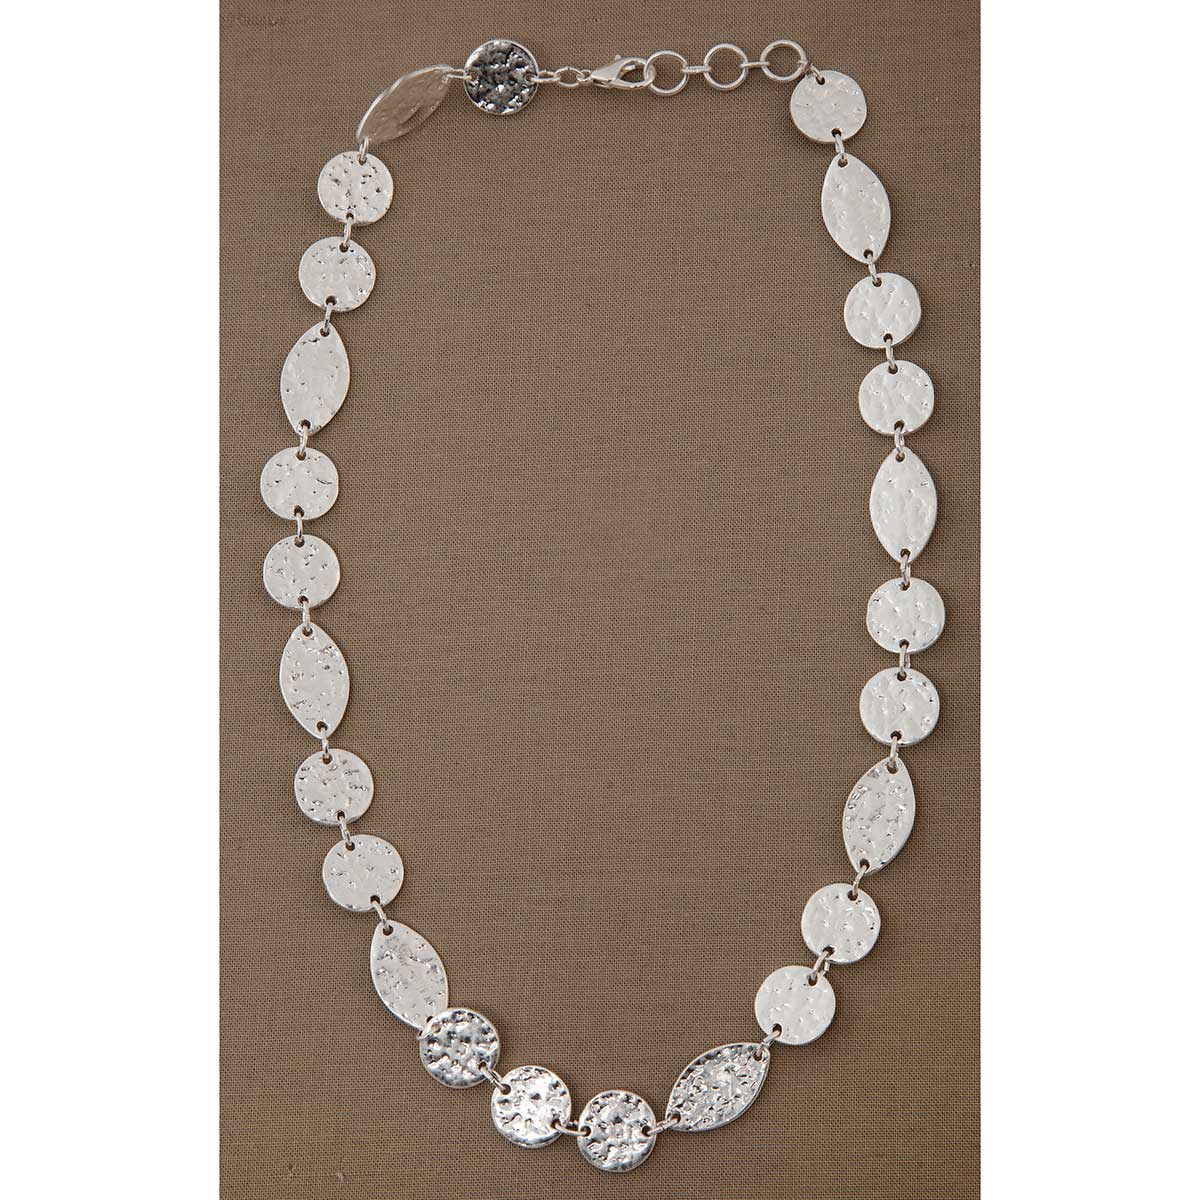 Silver Hammered Disc Necklace